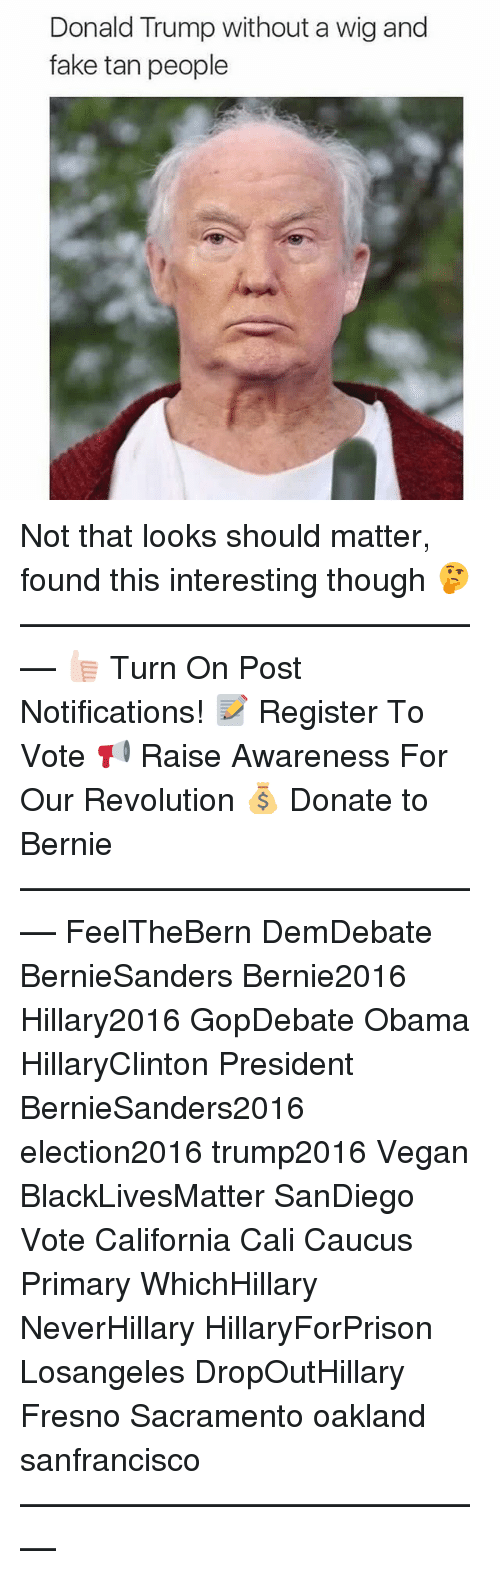 caucuses: Donald Trump without a wig and  fake tan people Not that looks should matter, found this interesting though 🤔 ––––––––––––––––––––––––––– 👍🏻 Turn On Post Notifications! 📝 Register To Vote 📢 Raise Awareness For Our Revolution 💰 Donate to Bernie ––––––––––––––––––––––––––– FeelTheBern DemDebate BernieSanders Bernie2016 Hillary2016 GopDebate Obama HillaryClinton President BernieSanders2016 election2016 trump2016 Vegan BlackLivesMatter SanDiego Vote California Cali Caucus Primary WhichHillary NeverHillary HillaryForPrison Losangeles DropOutHillary Fresno Sacramento oakland sanfrancisco –––––––––––––––––––––––––––